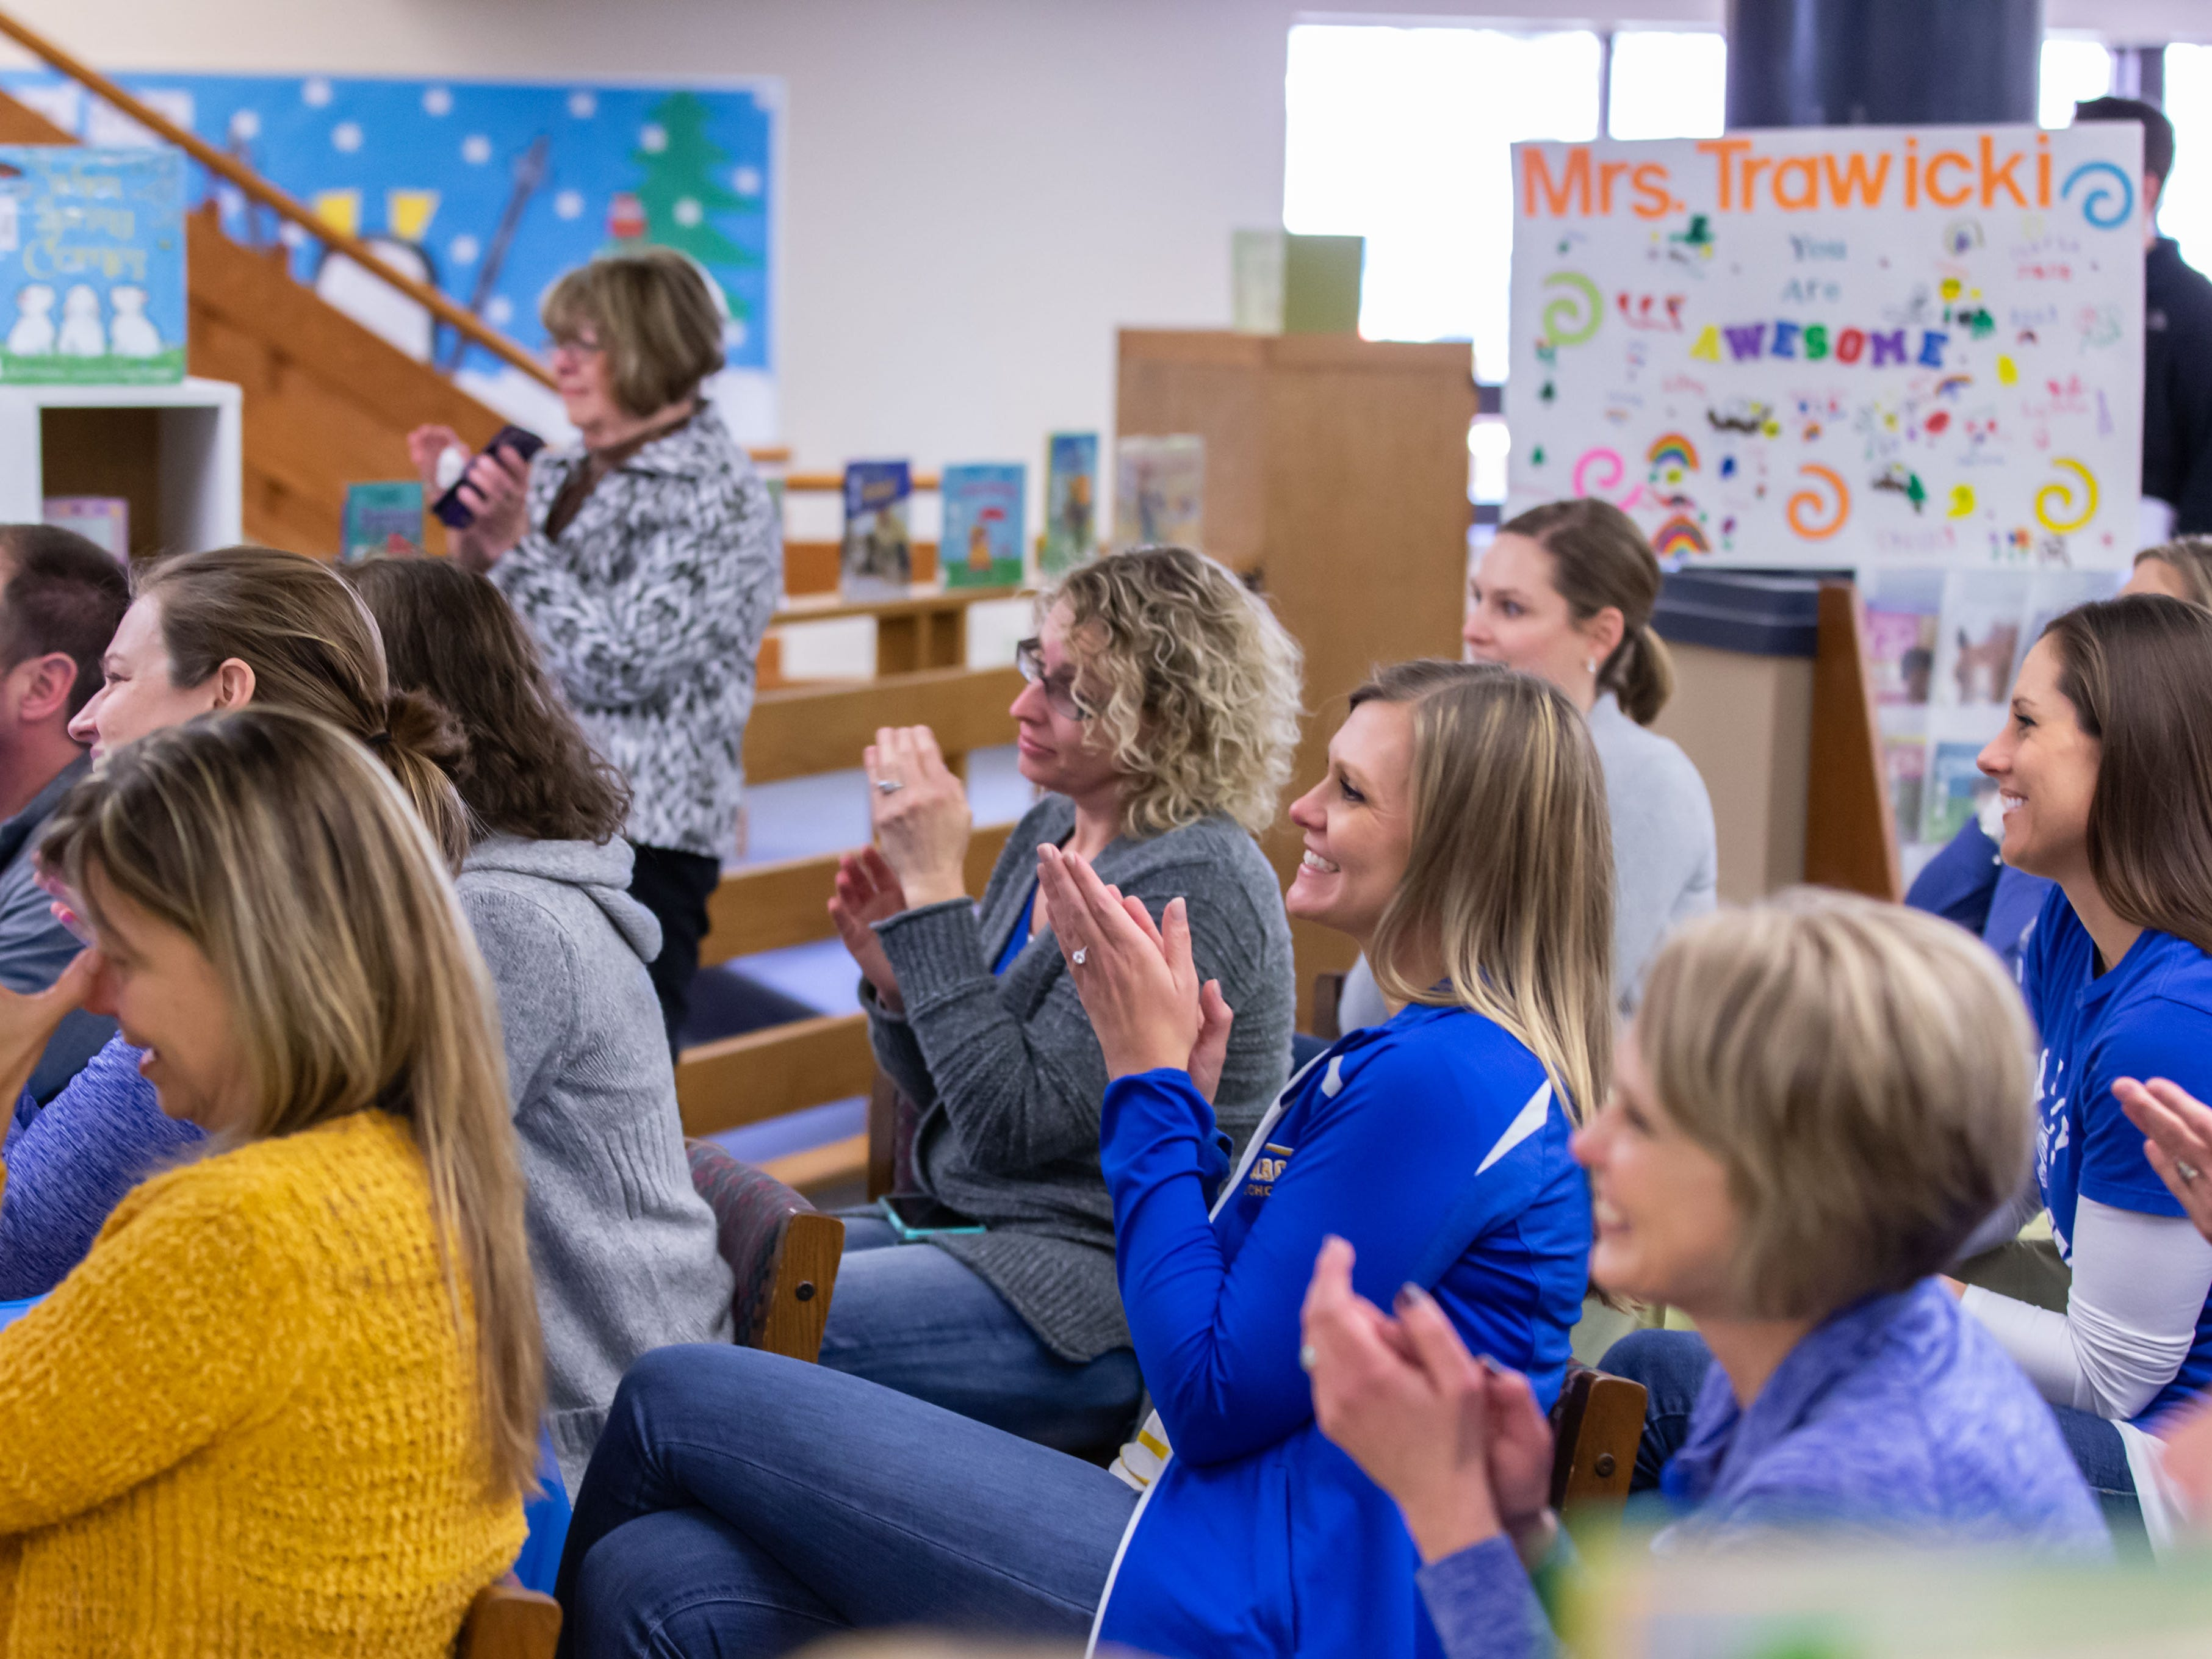 Marcy Elementary School staff members applaud as their Principal, Michele Trawicki, is named the 2019 Wisconsin Elementary School Principal of the Year by the Association of Wisconsin School Administrators (AWSA) on Friday, April 5, 2019.